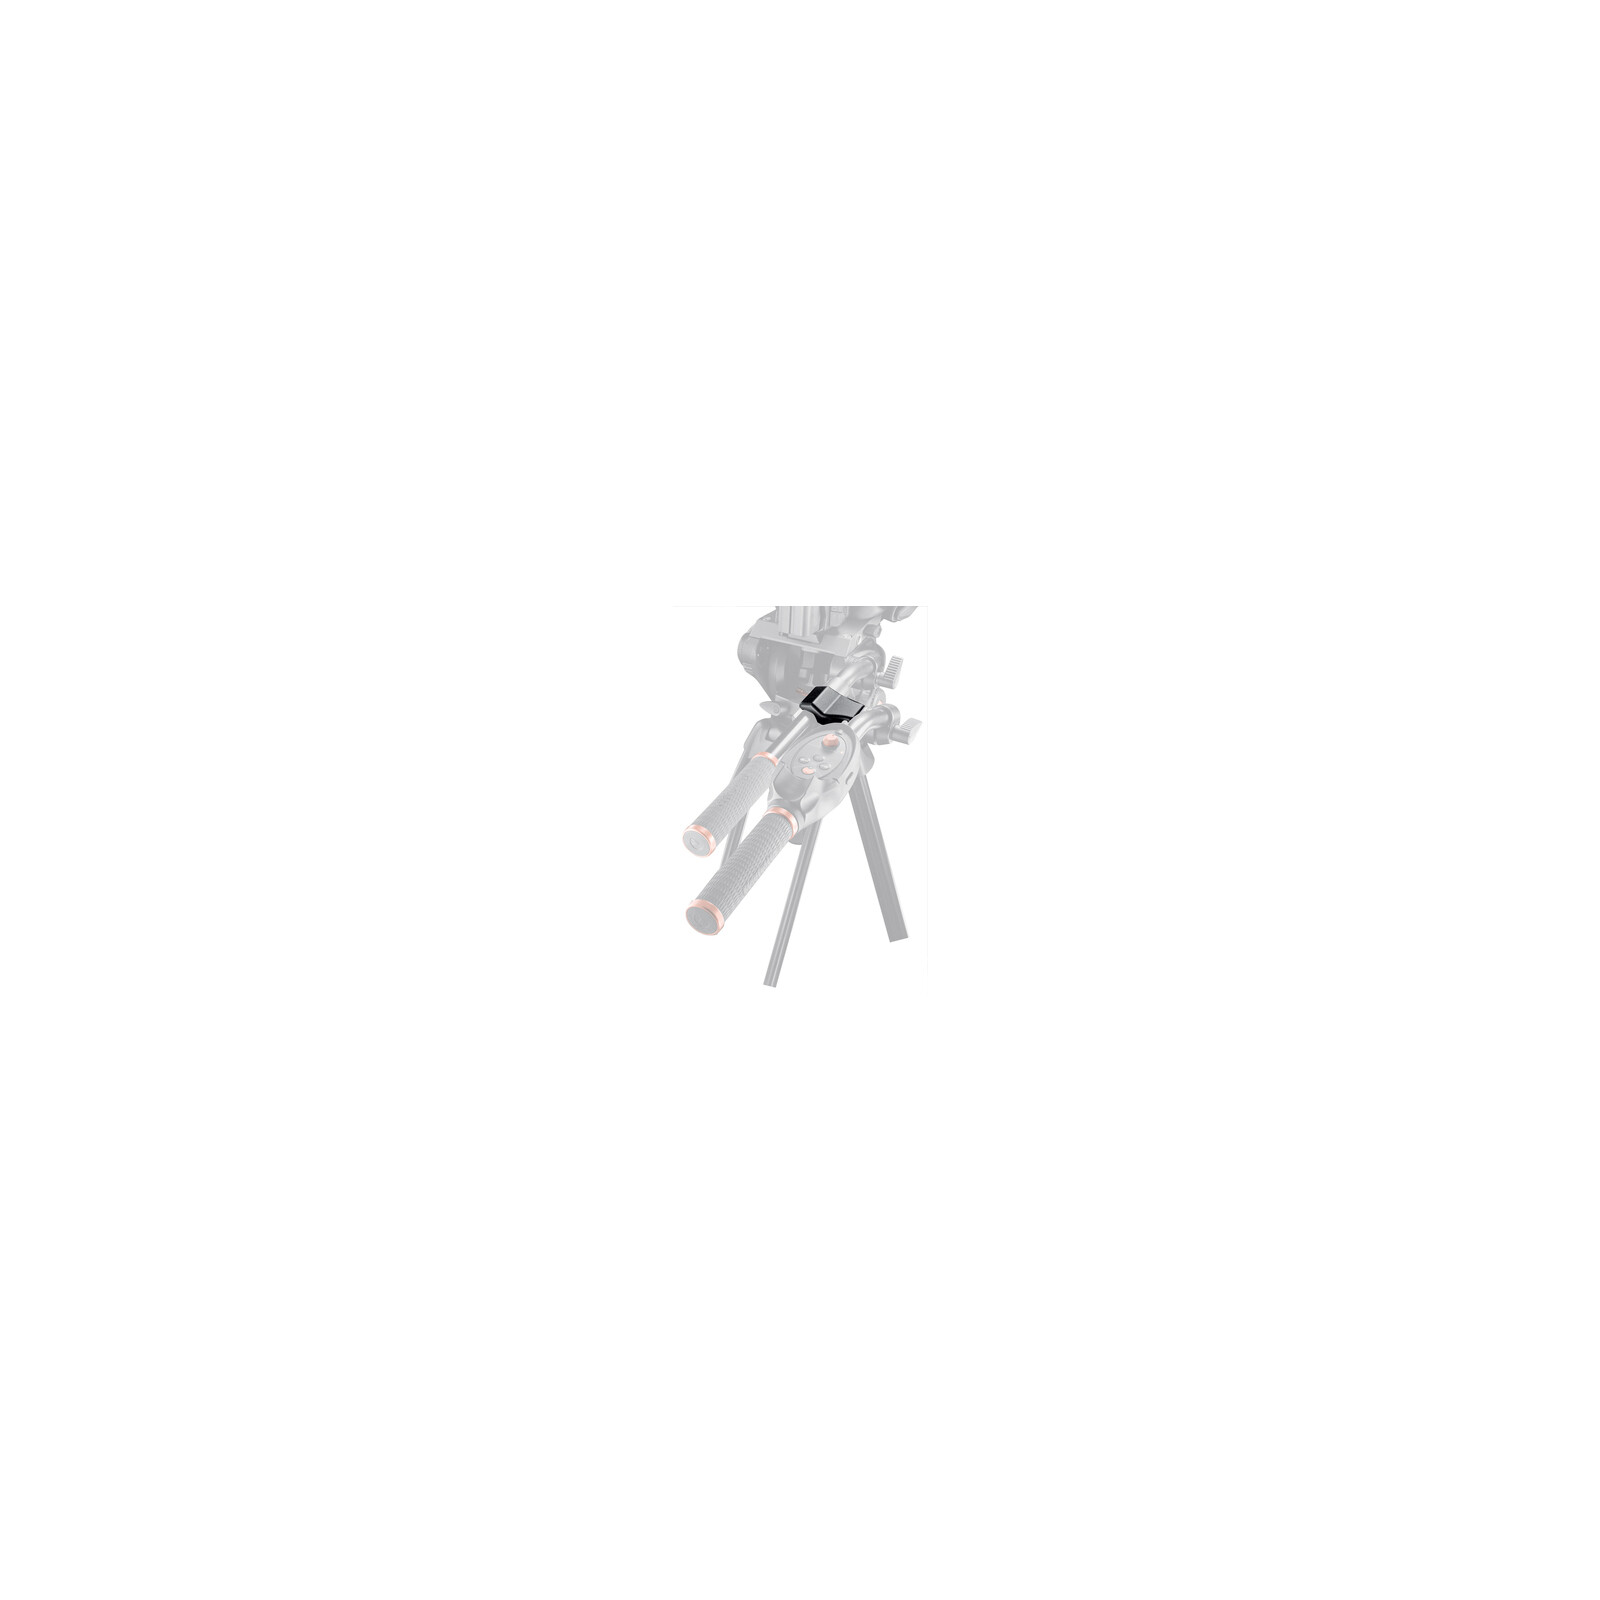 Manfrotto MVR901APCL Montage Klemme